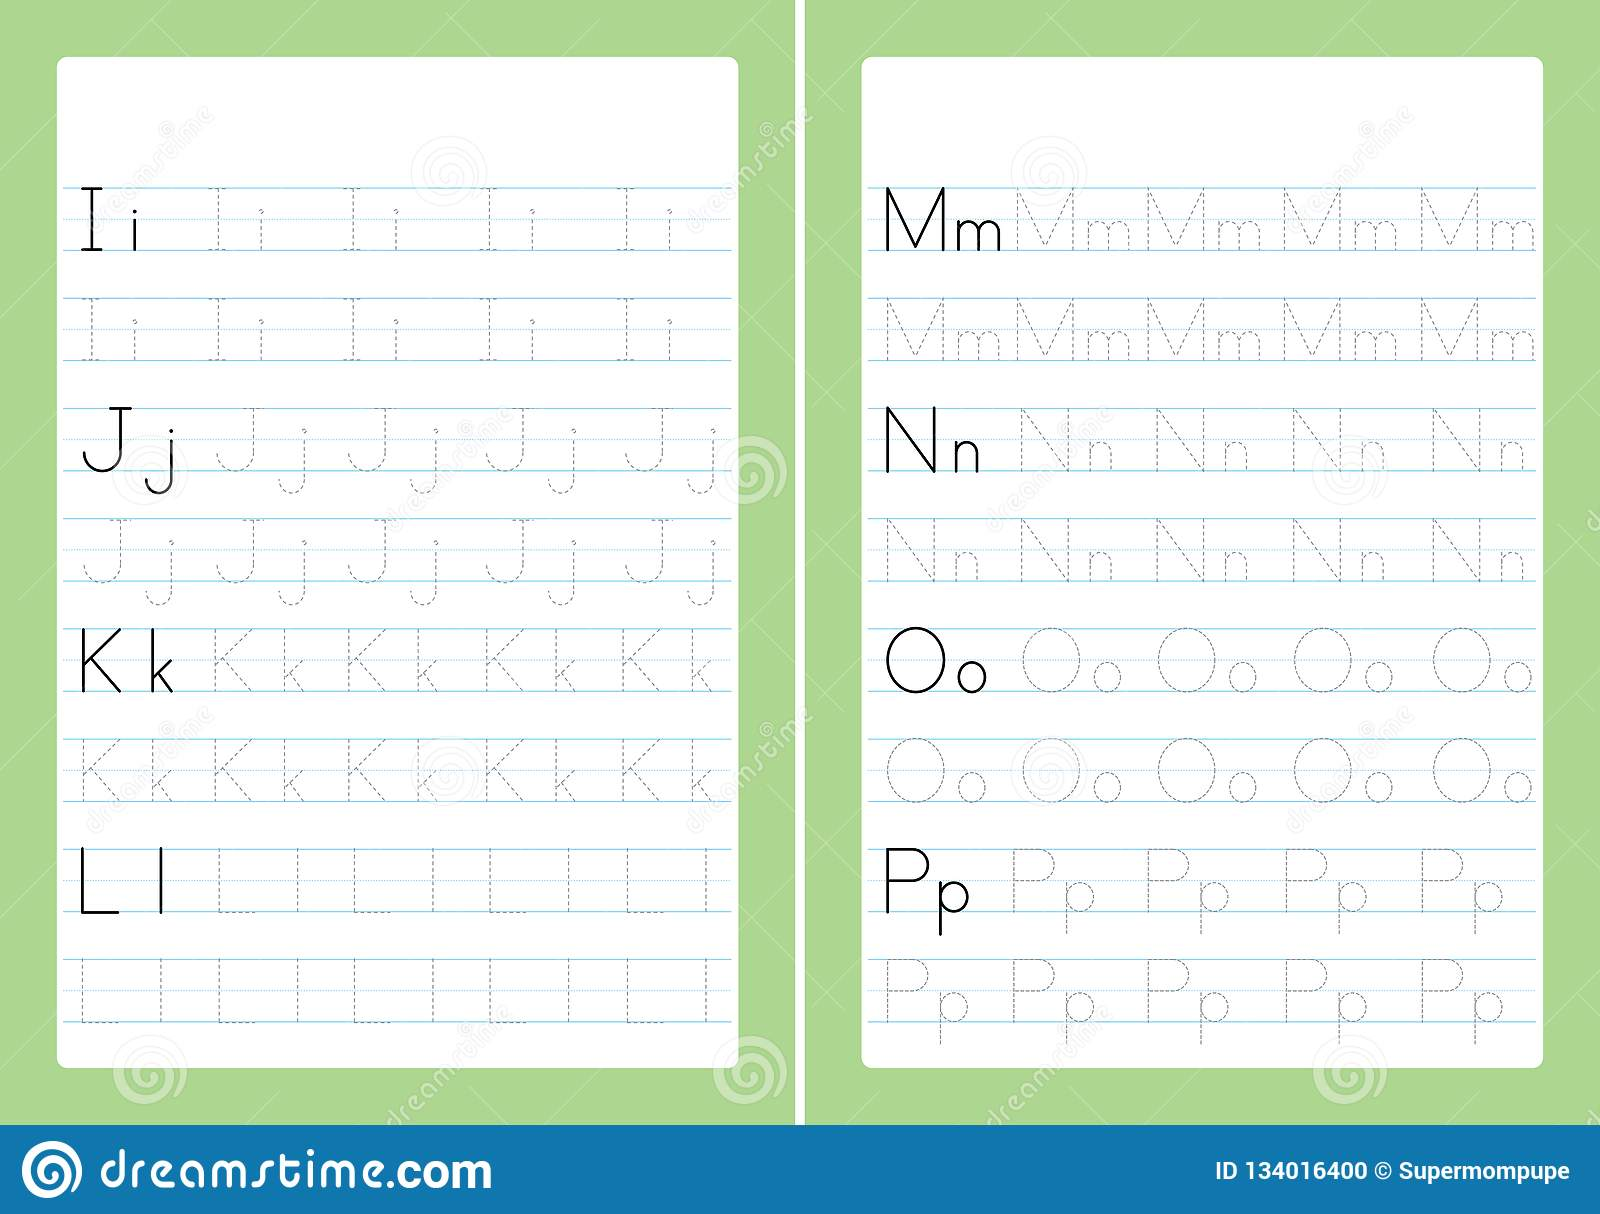 hight resolution of ABC Alphabet Letters Tracing Worksheet With Alphabet Letters. Basic Writing  Practice For Kindergarten Kids A4 Paper Ready To Print Stock Vector -  Illustration of basic